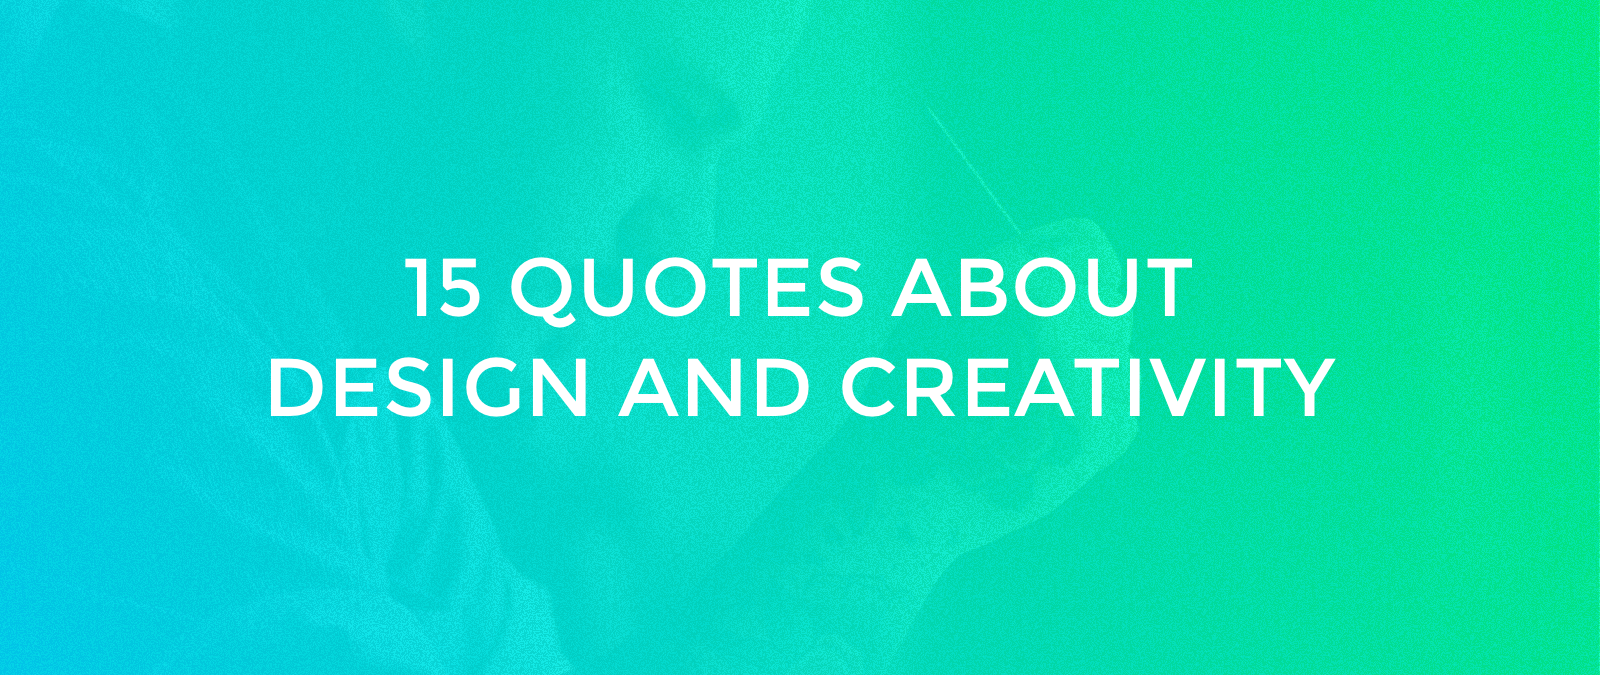 Quotes On Creativity Impressive 15 Quotes About Design And Creativity  Website Elements  Pinterest . 2017